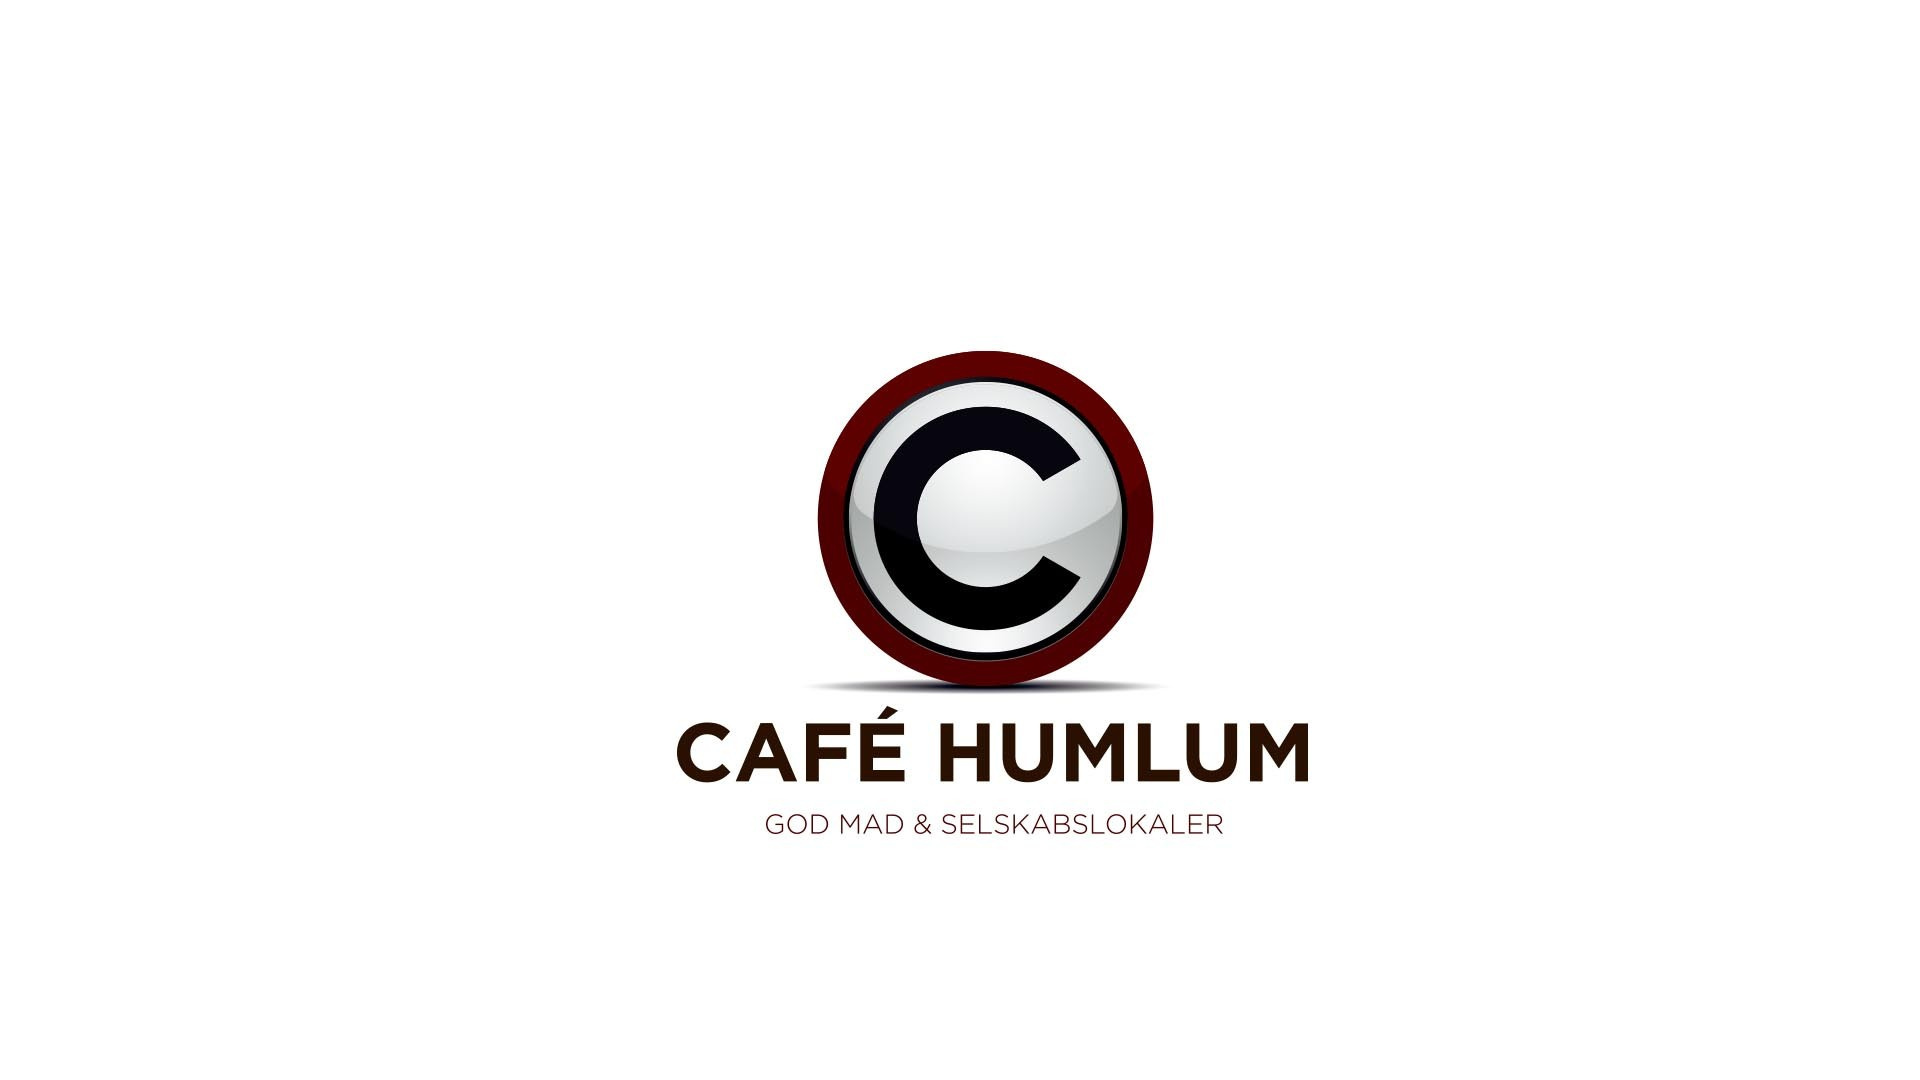 dm golf cafehumlum